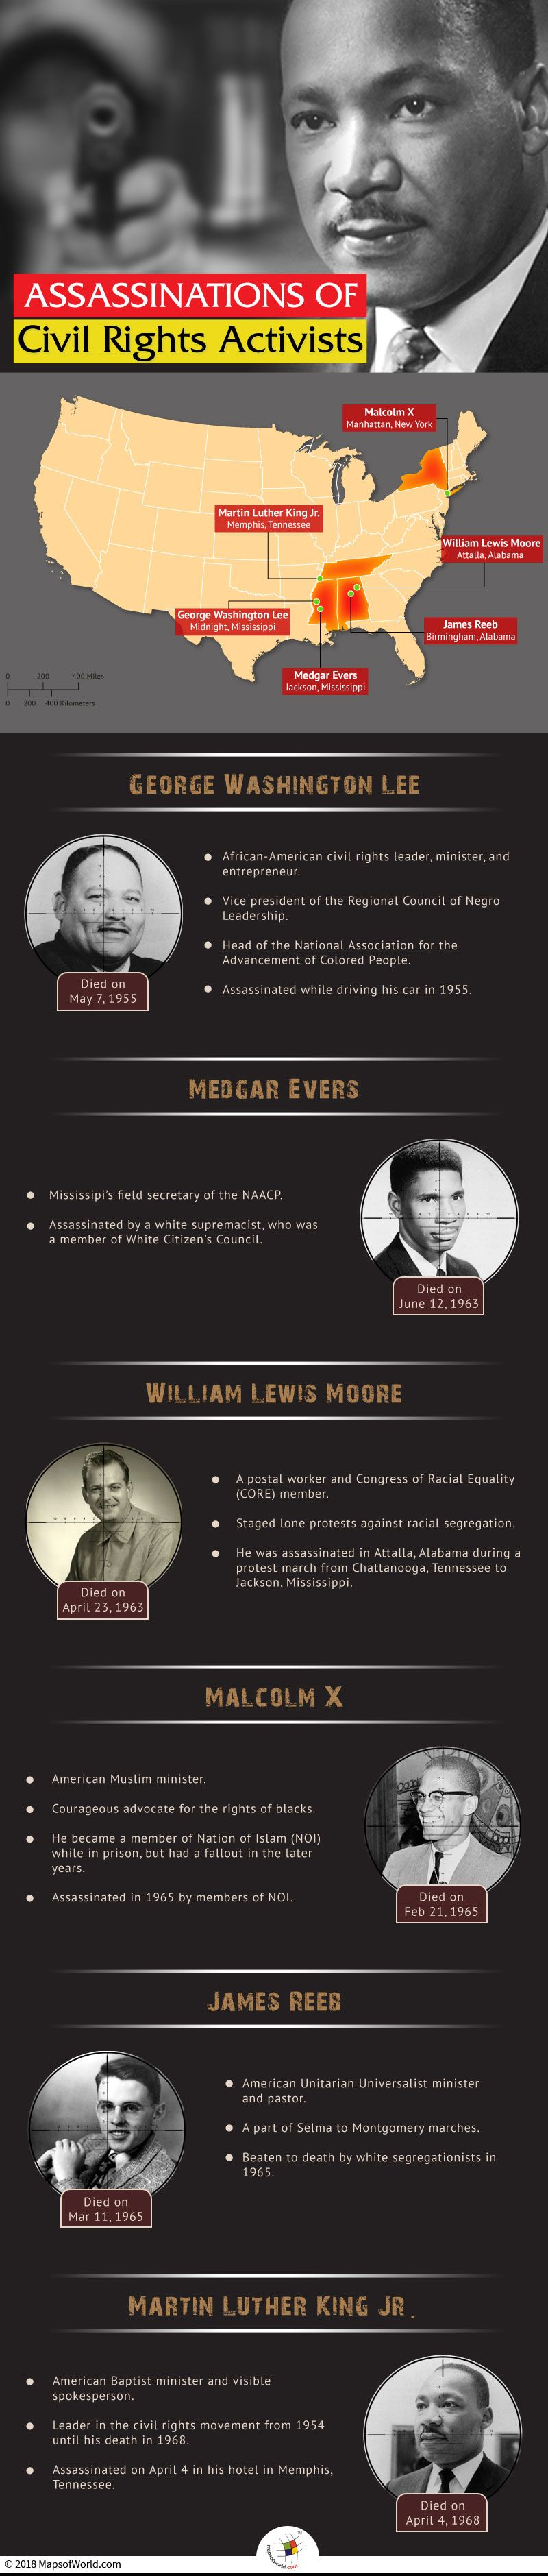 Photo of What Major Civil Rights Activists were Assassinated?